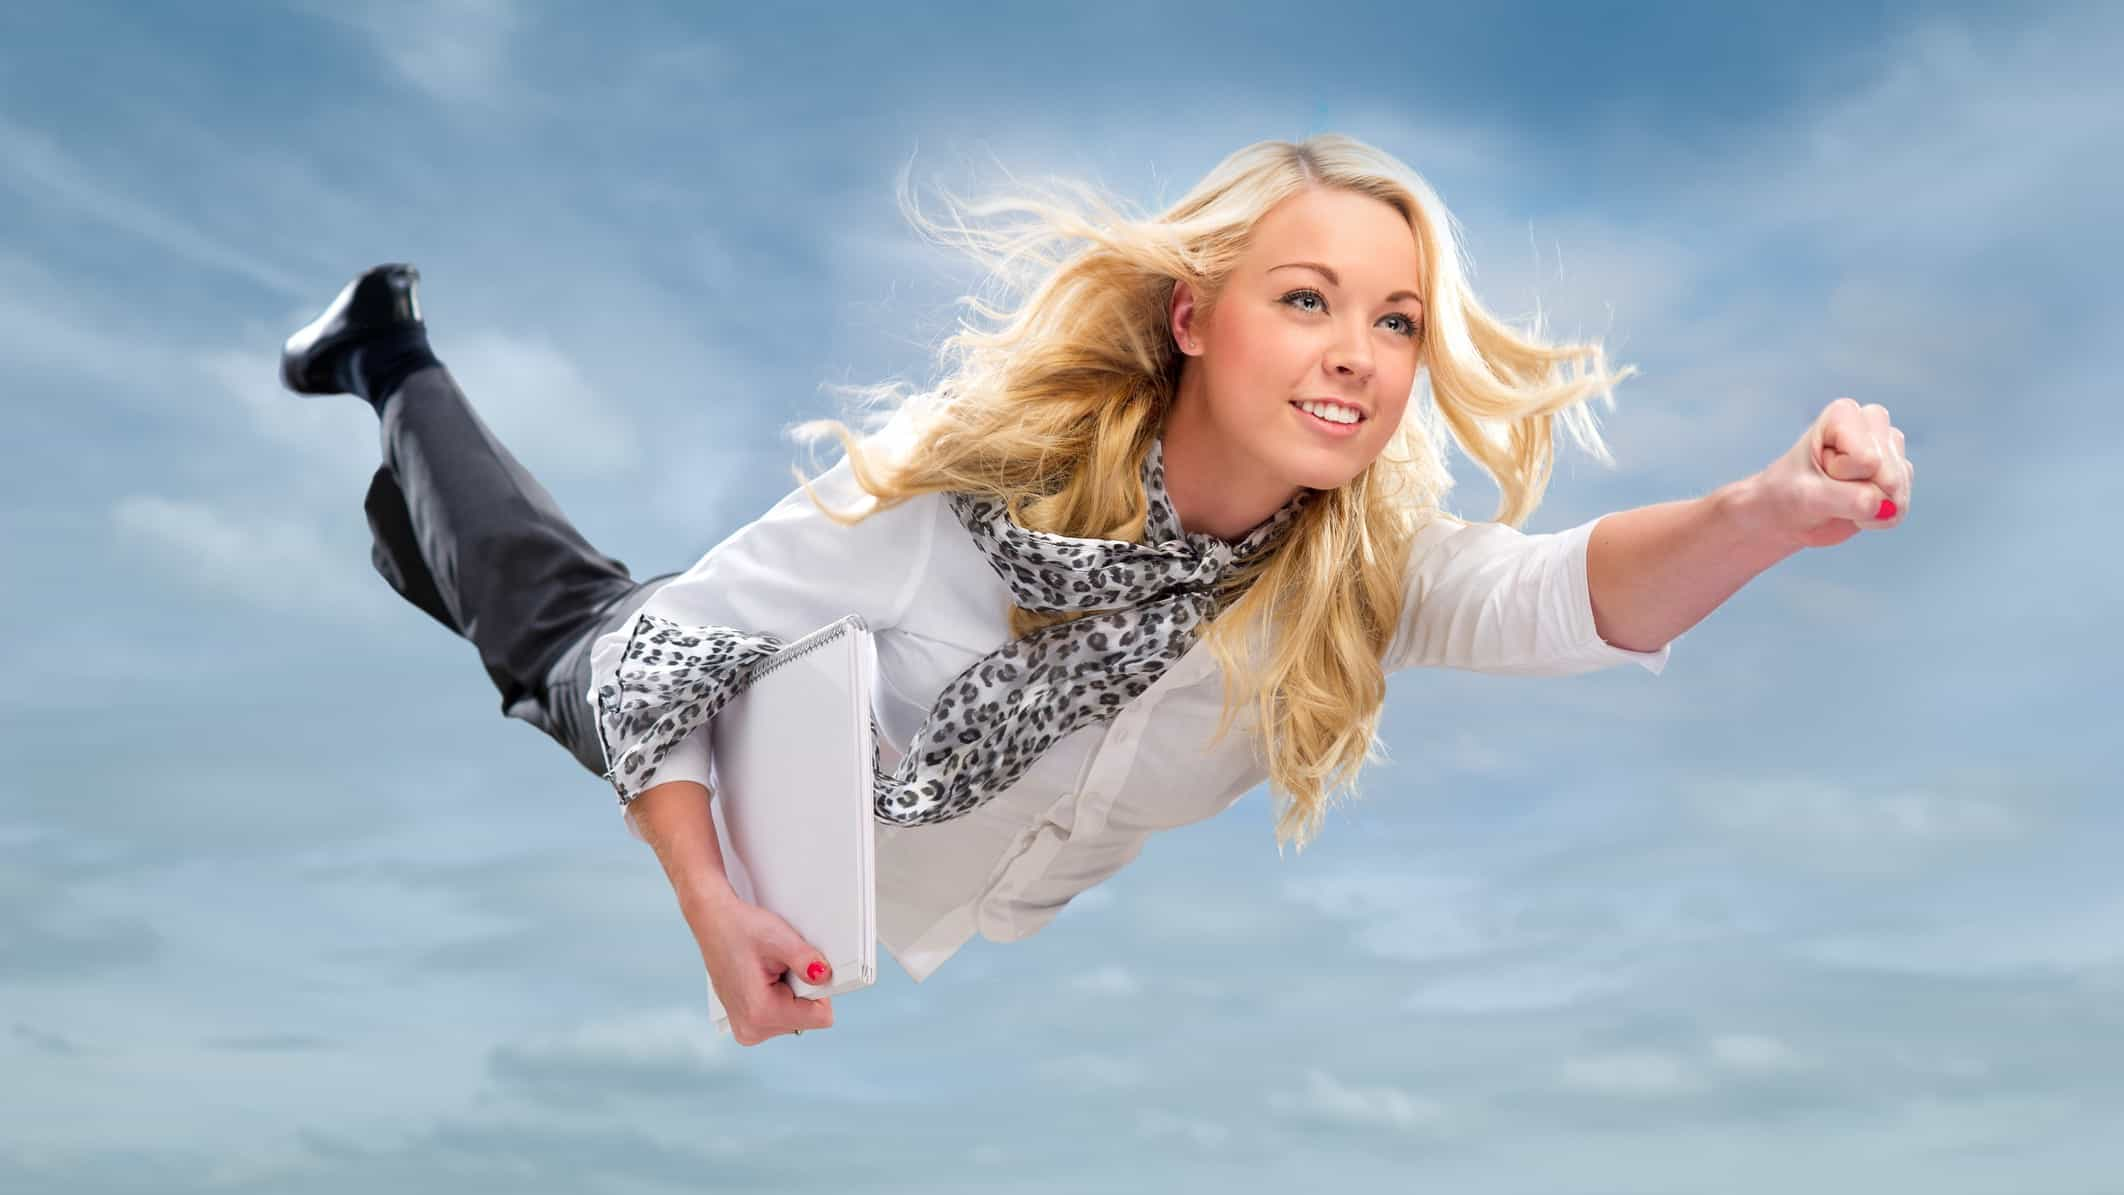 rising asx share price represented by woman flying through the air